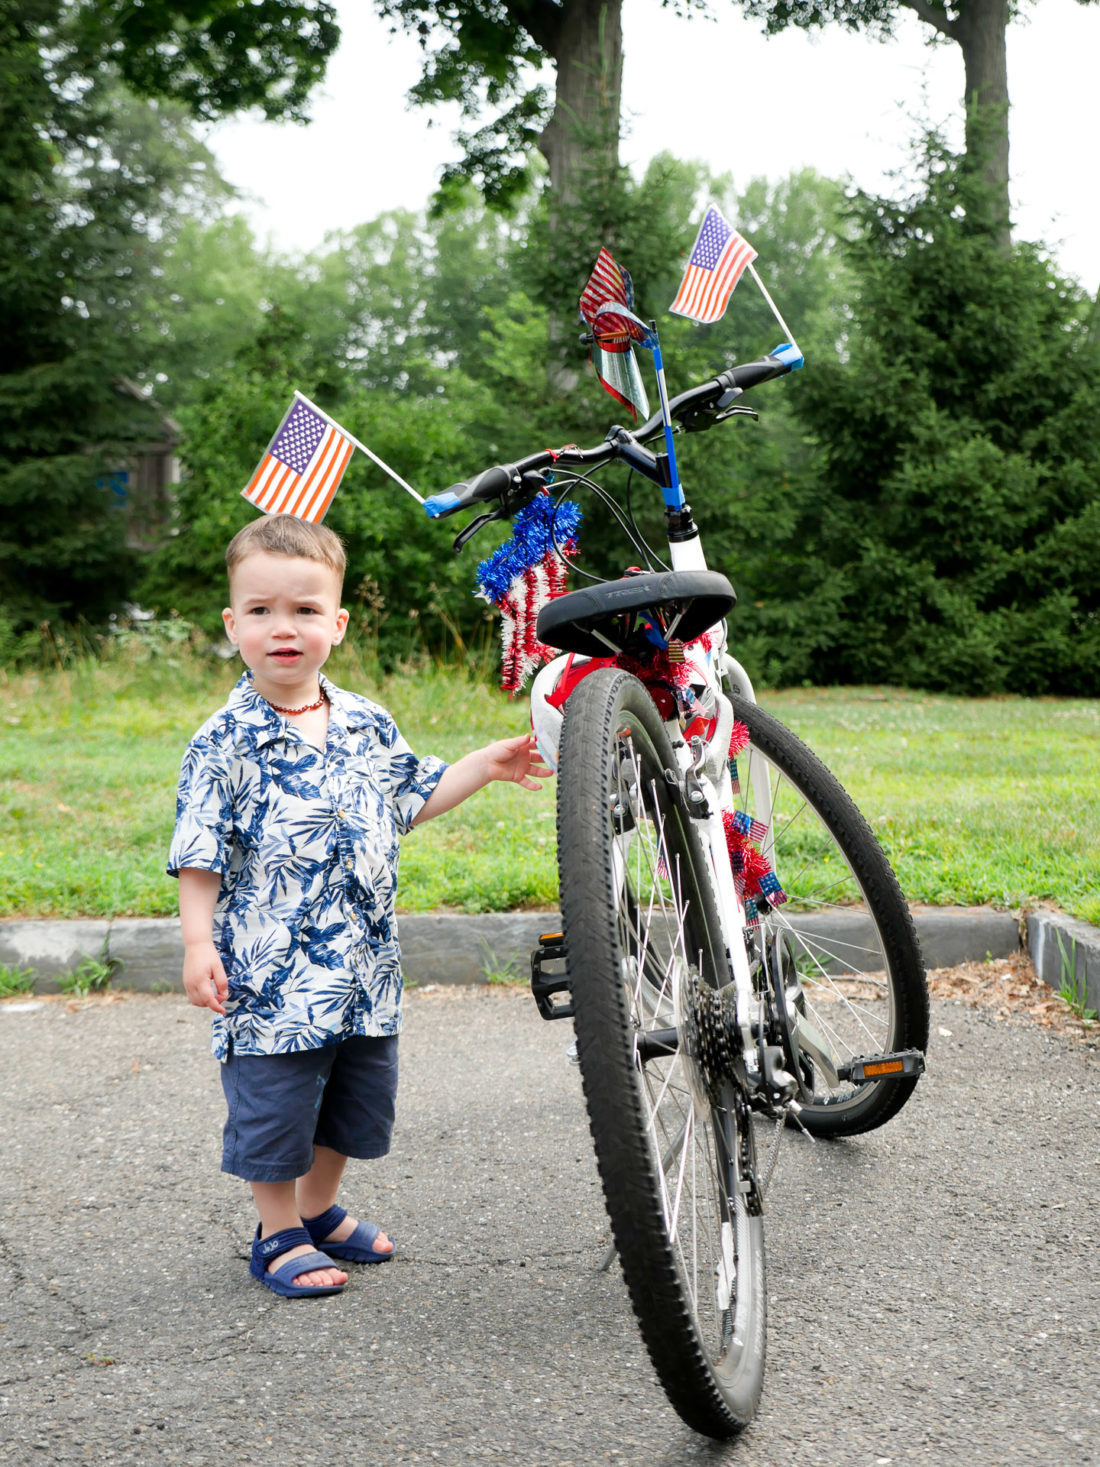 Major Martino admires a festively decorated fourth of july bike at a party in Connecticut